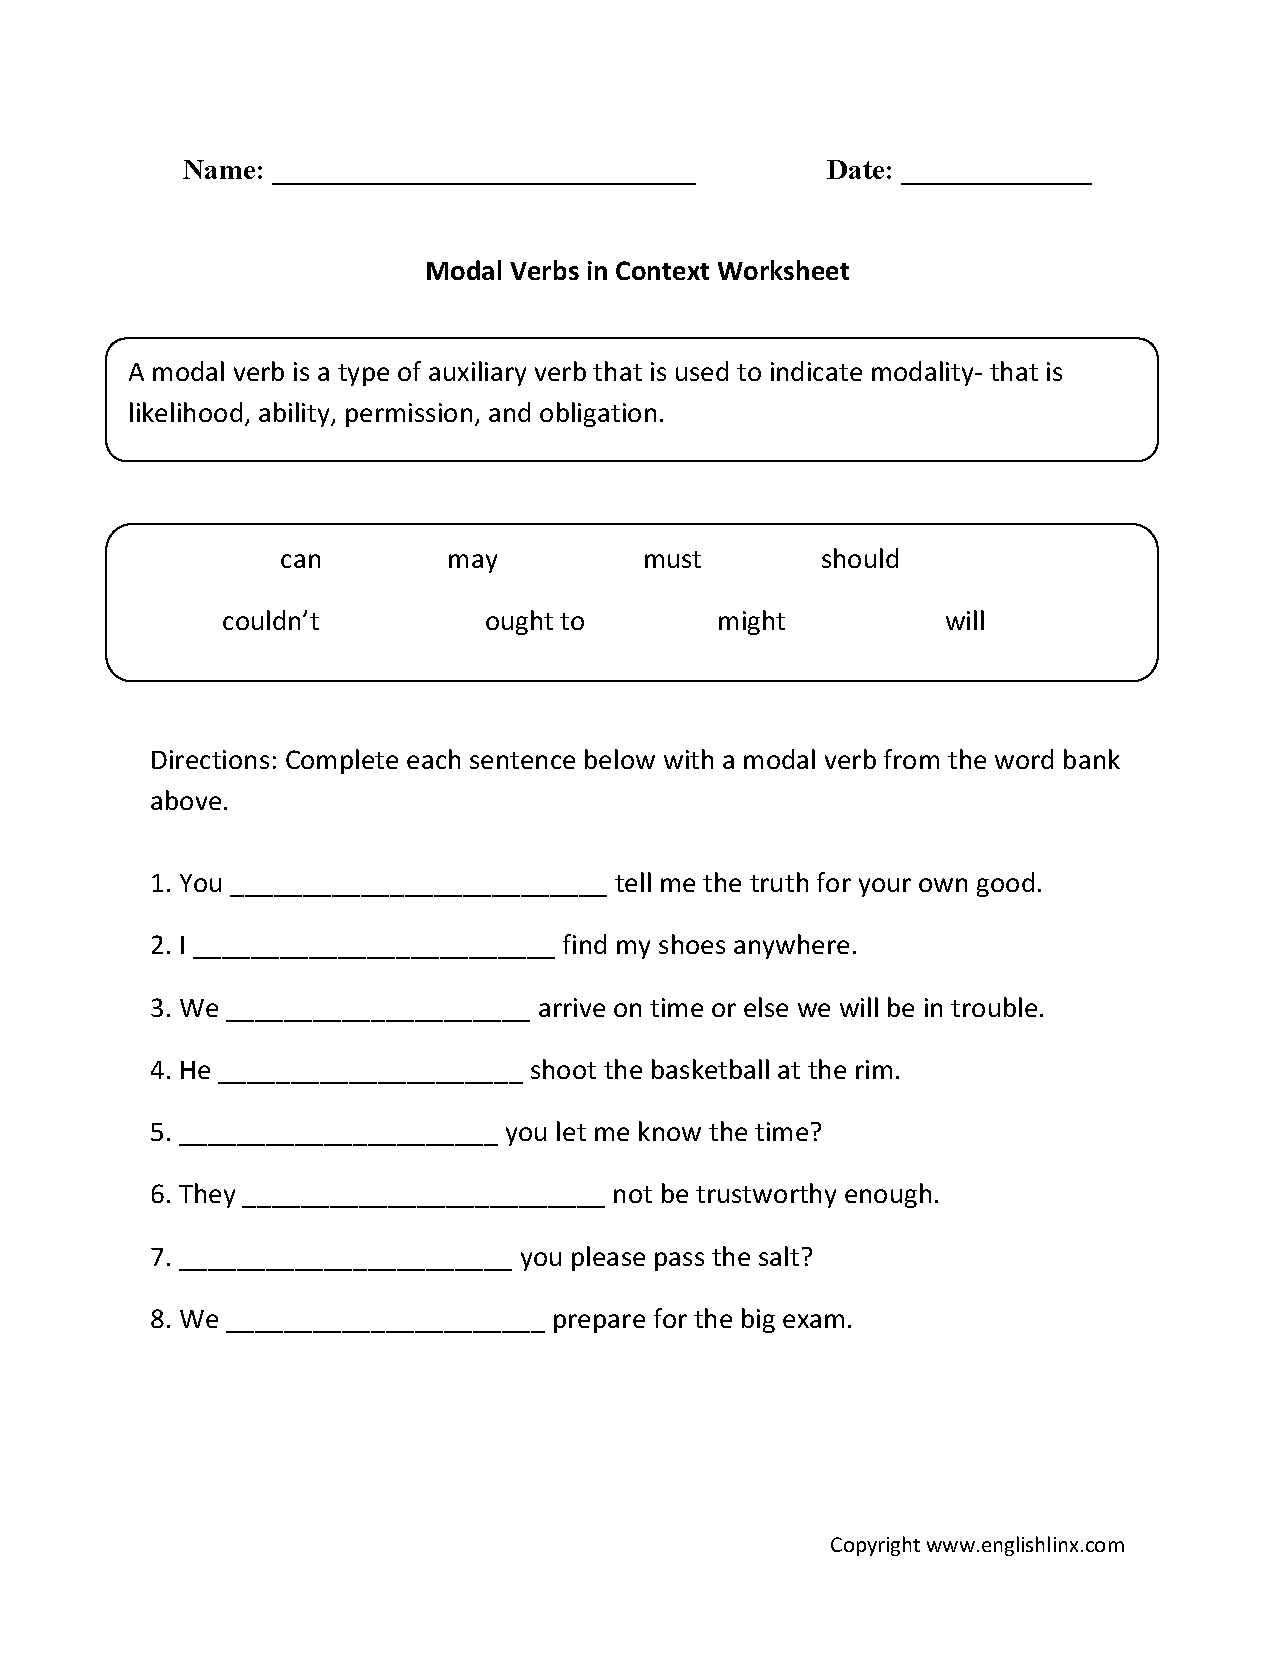 Aldiablosus  Ravishing Worksheet For Verbs  Coffemix With Fascinating Englishlinxcom  Verbs Worksheets With Divine States Of Matter Worksheet Answers Also Equivalent Expressions Worksheet In Addition Balancing Redox Reactions Worksheet And Free Printable Budget Worksheet As Well As Line Of Best Fit Worksheet Answers Additionally Interpreting The Bill Of Rights Worksheet Answers From Coffemixcom With Aldiablosus  Fascinating Worksheet For Verbs  Coffemix With Divine Englishlinxcom  Verbs Worksheets And Ravishing States Of Matter Worksheet Answers Also Equivalent Expressions Worksheet In Addition Balancing Redox Reactions Worksheet From Coffemixcom